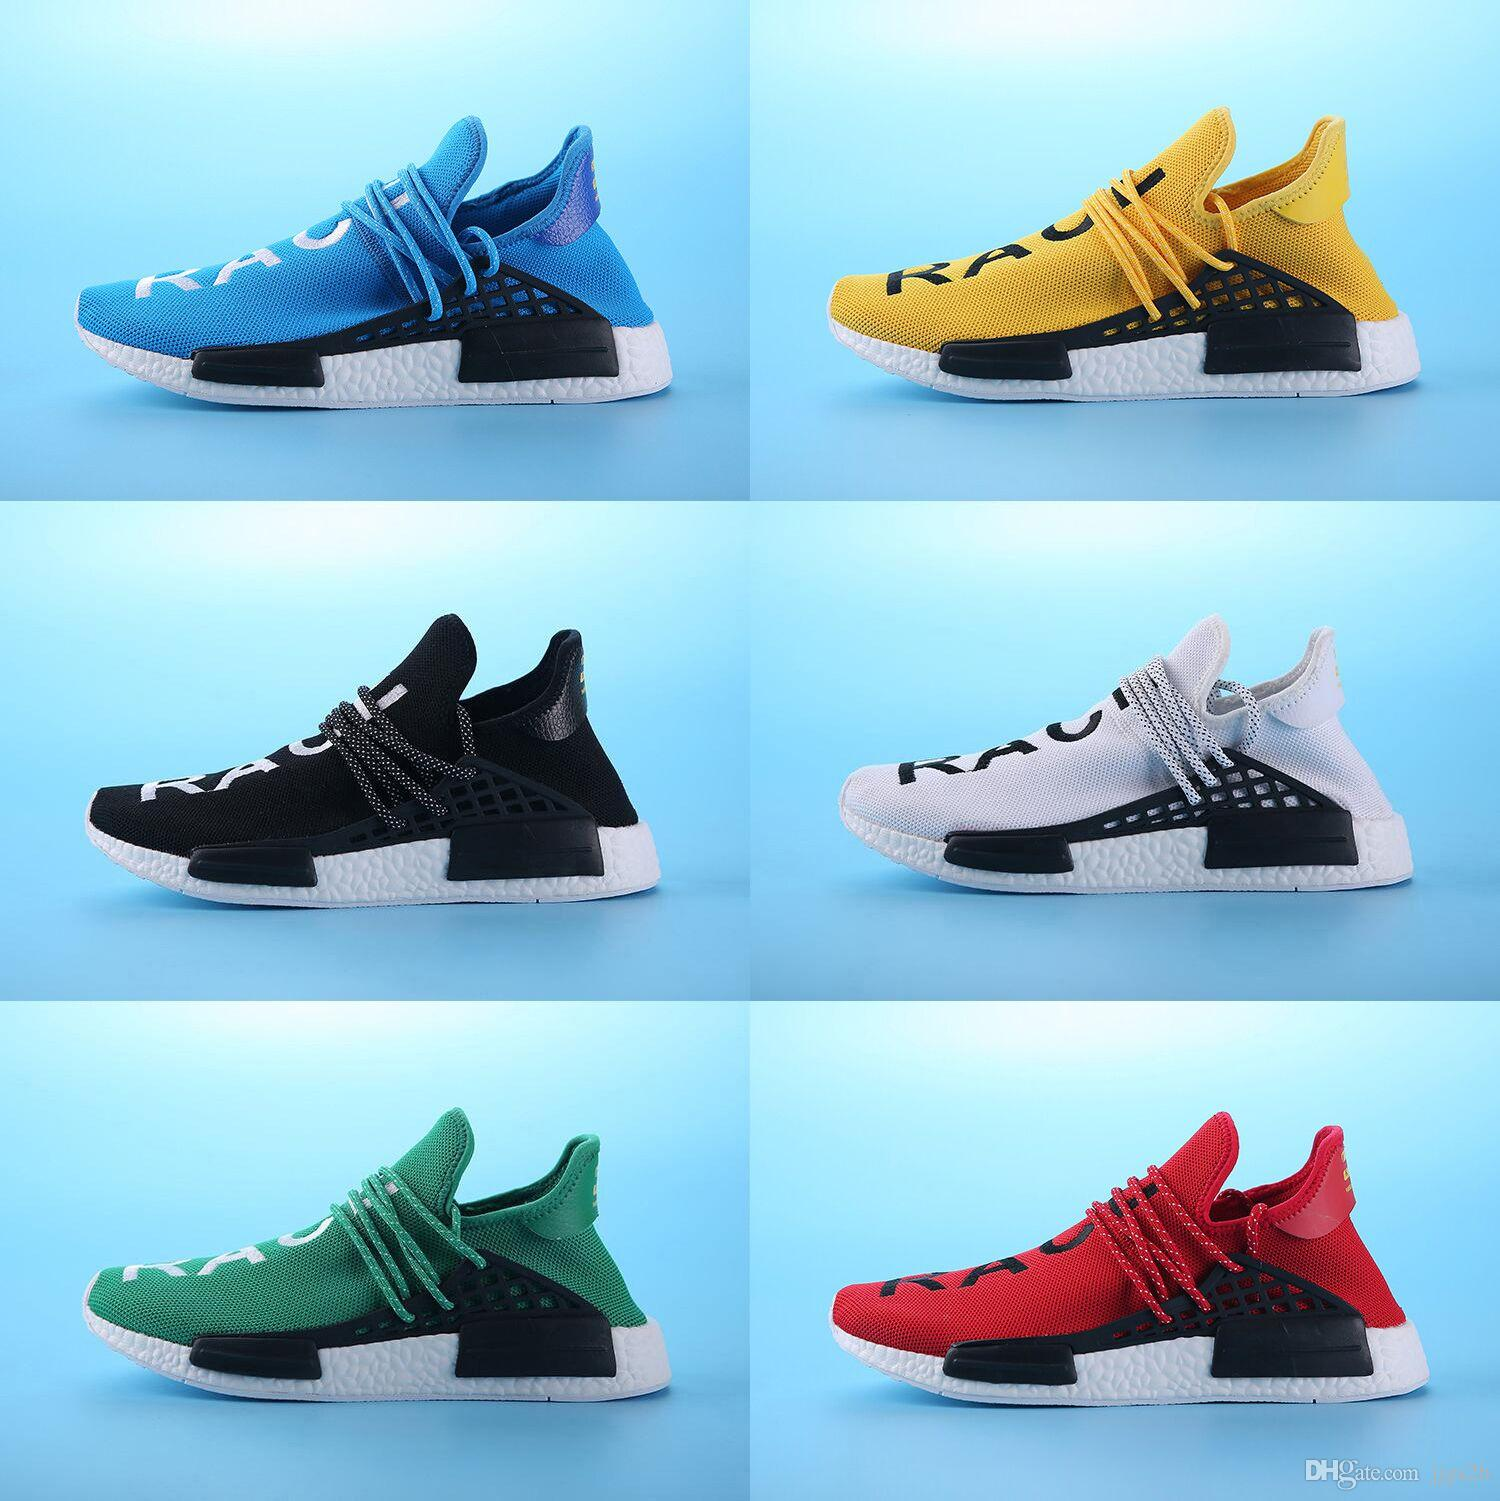 913ffe2d1 HOT New Pharrell Williams X NMD Human Race Running Shoes NMD Runner NMD R1  Men  Women Sports Sneakers Boots Size 36 44 Sale Online Fashion Shoes Shoes  For ...